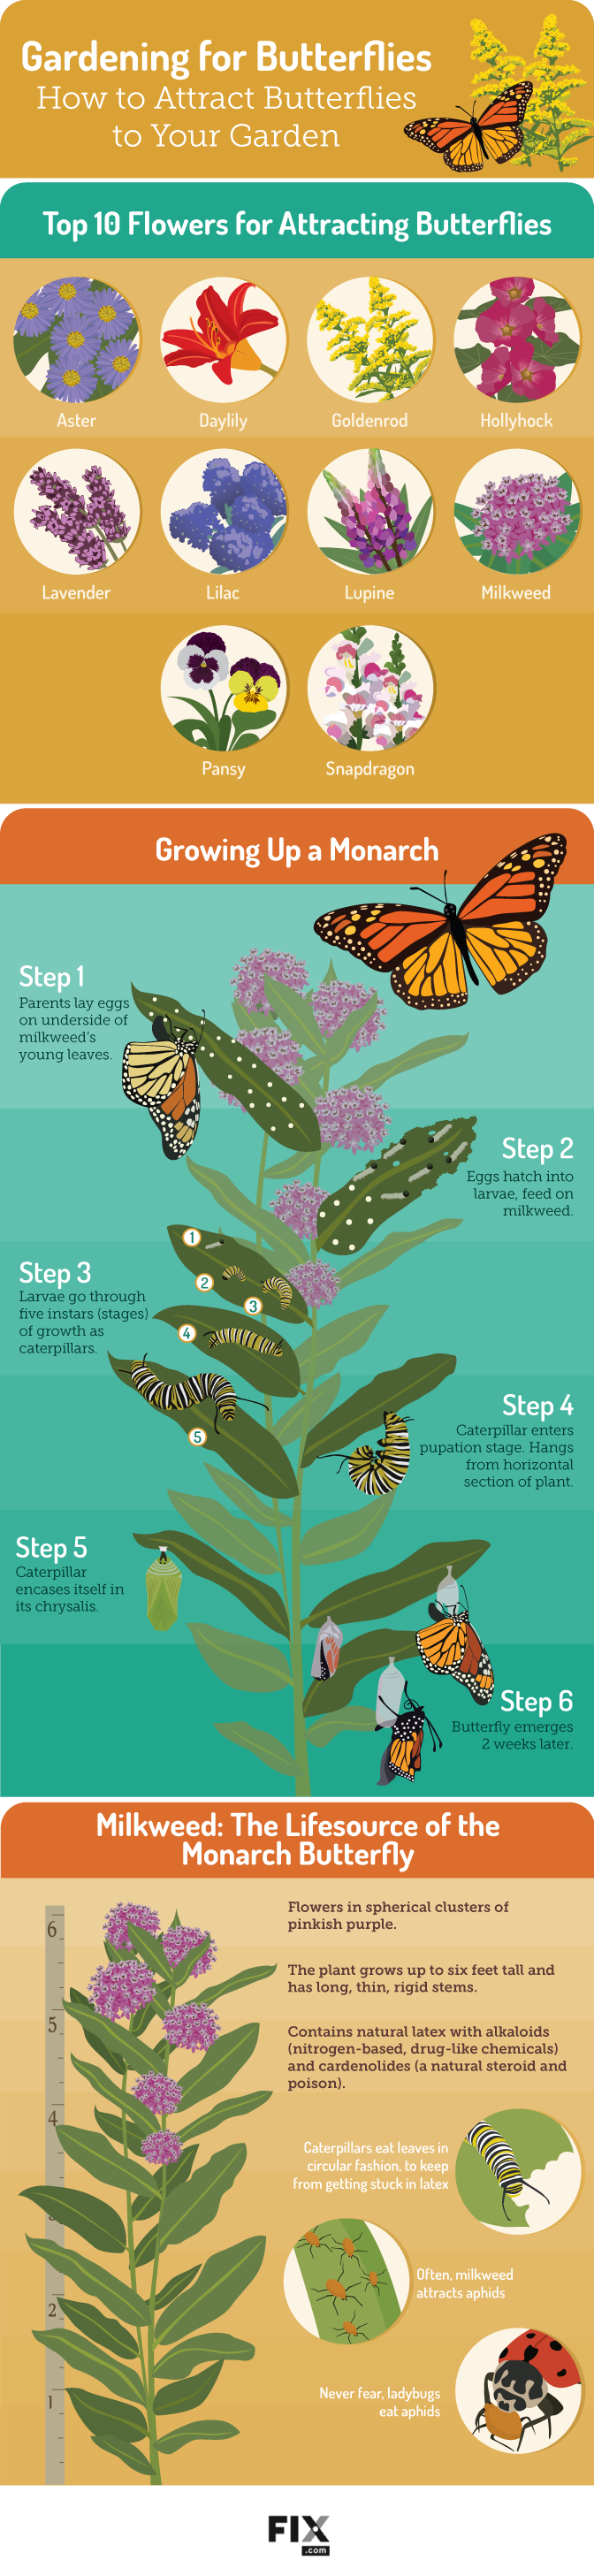 Gardening for Butterflies How to Attract Butterflies to ...